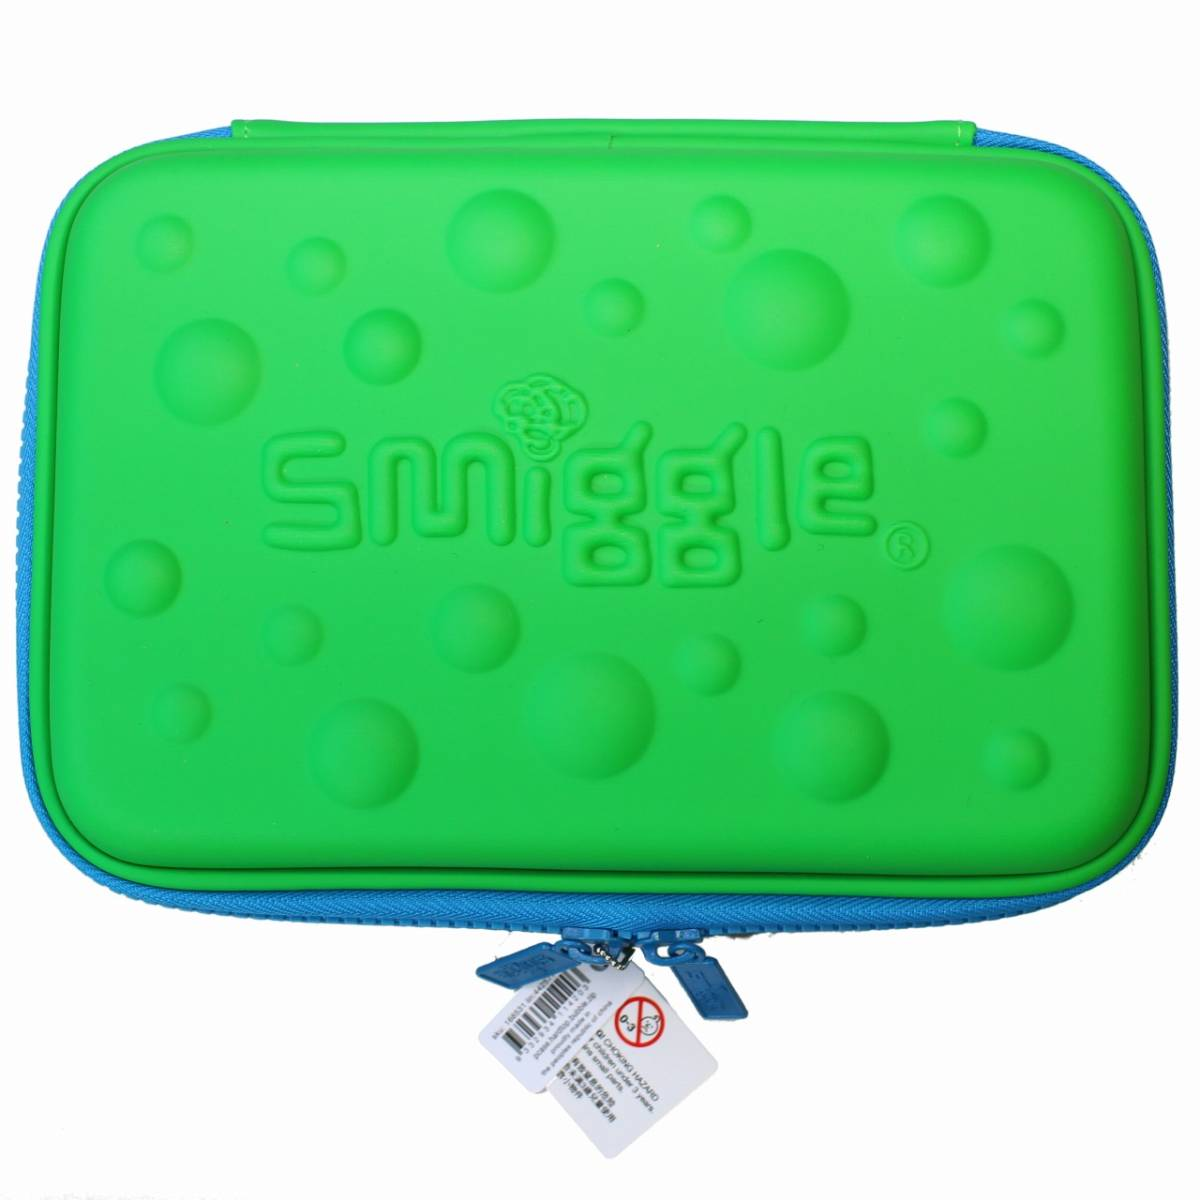 smiggle スミグル 筆箱と文房具 ギフトセットB Bubble Hardtop Crazy Gift Pack (Green) 新品 送料込み メイクケース ポーチ コスメケース_画像2